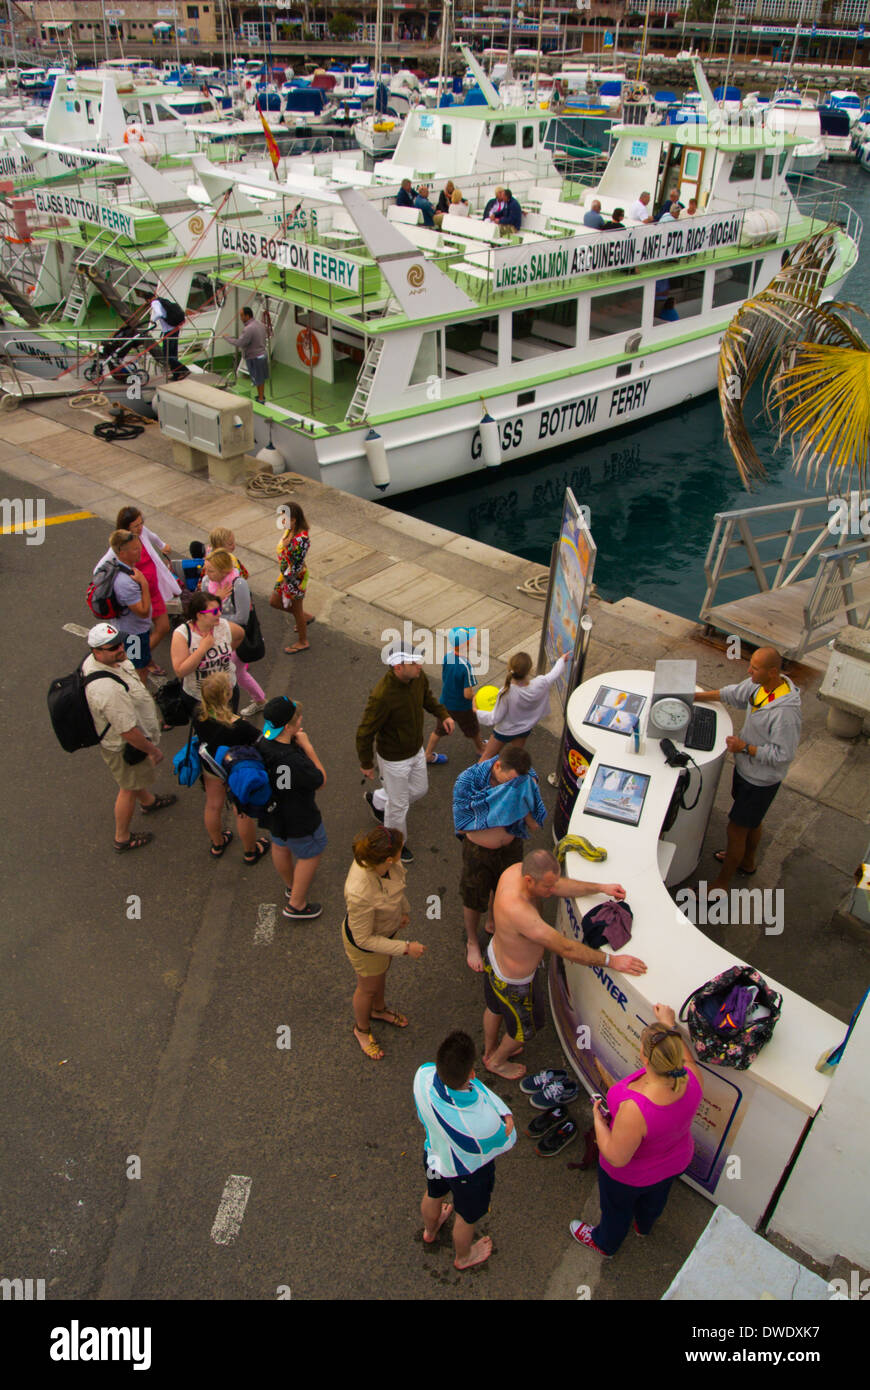 Watersports center, Puerto the port, Puerto Rico, Gran Canaria island, the Canary Islands, Spain, Europe - Stock Image